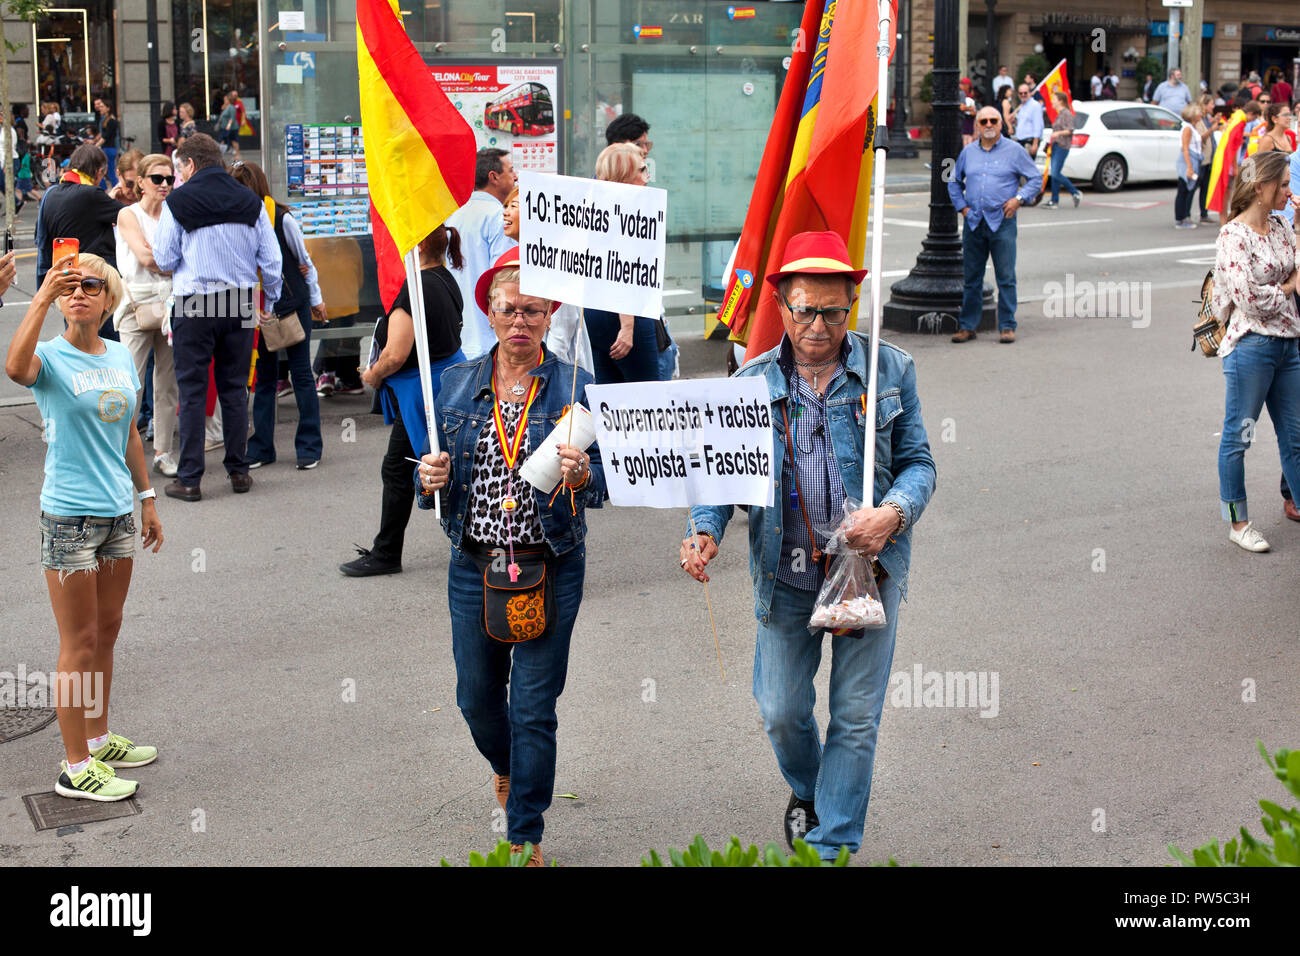 Protestors at anti-Catalan independence rally, Barcelona, Spain. - Stock Image